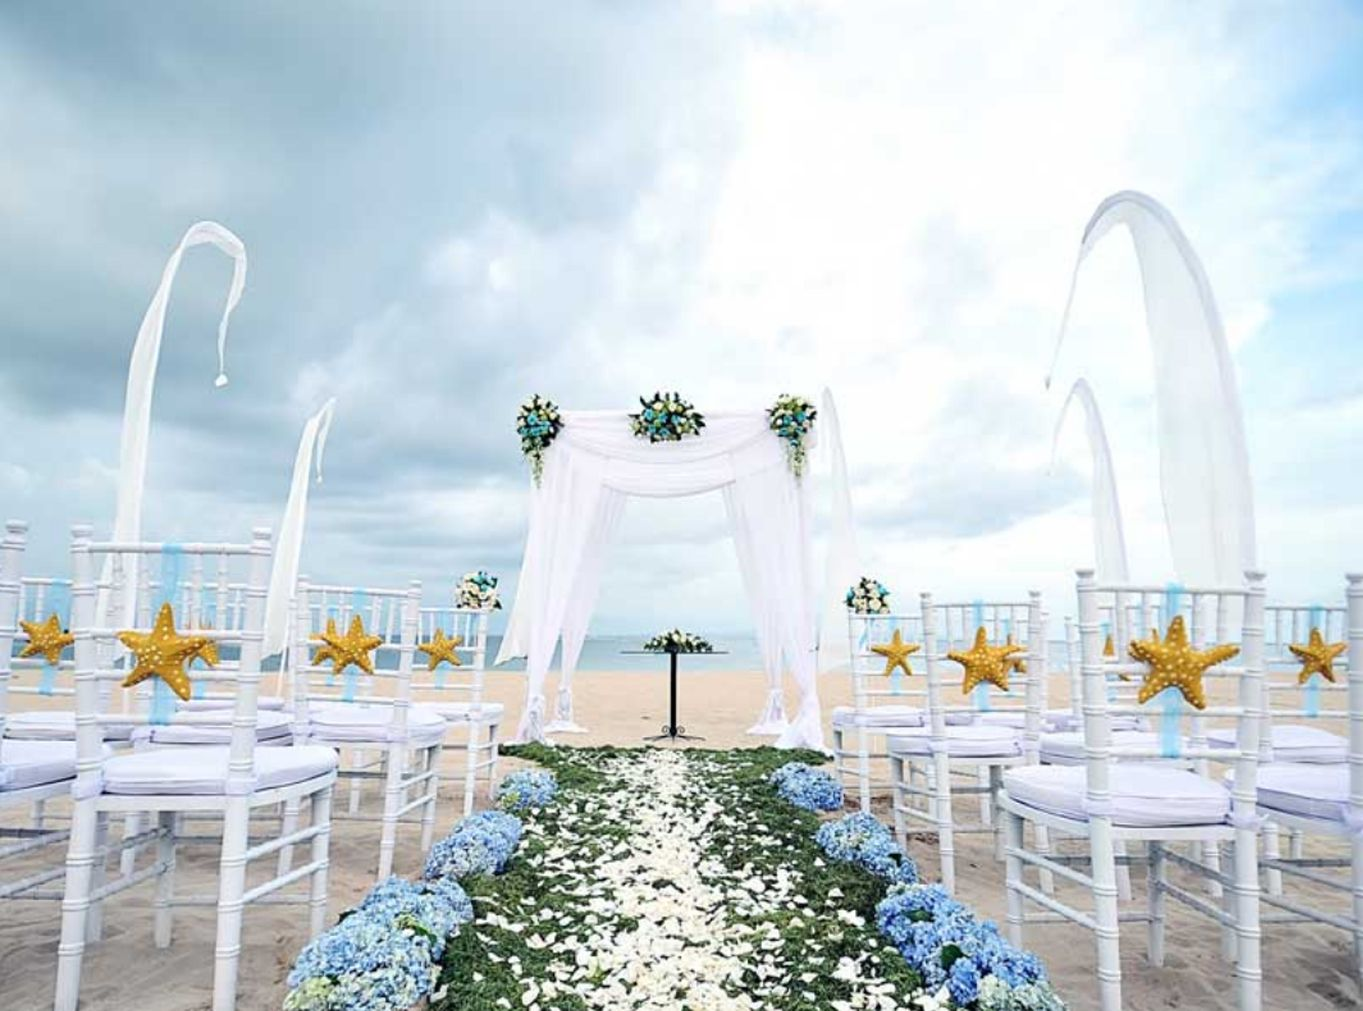 The Tanjung Benoa Beach Resort Bali strives to bring together your celebration of love with great passion and elegance. Give us a chance to make your wedding day the magic that it deserves! Click our link on bio to explore our gallery, or send an inquiry to em@nilamanihotels.com.  #TheTanjungBenoaBeachResort #TheTanjungBenoa #TheTaoBali #Bali